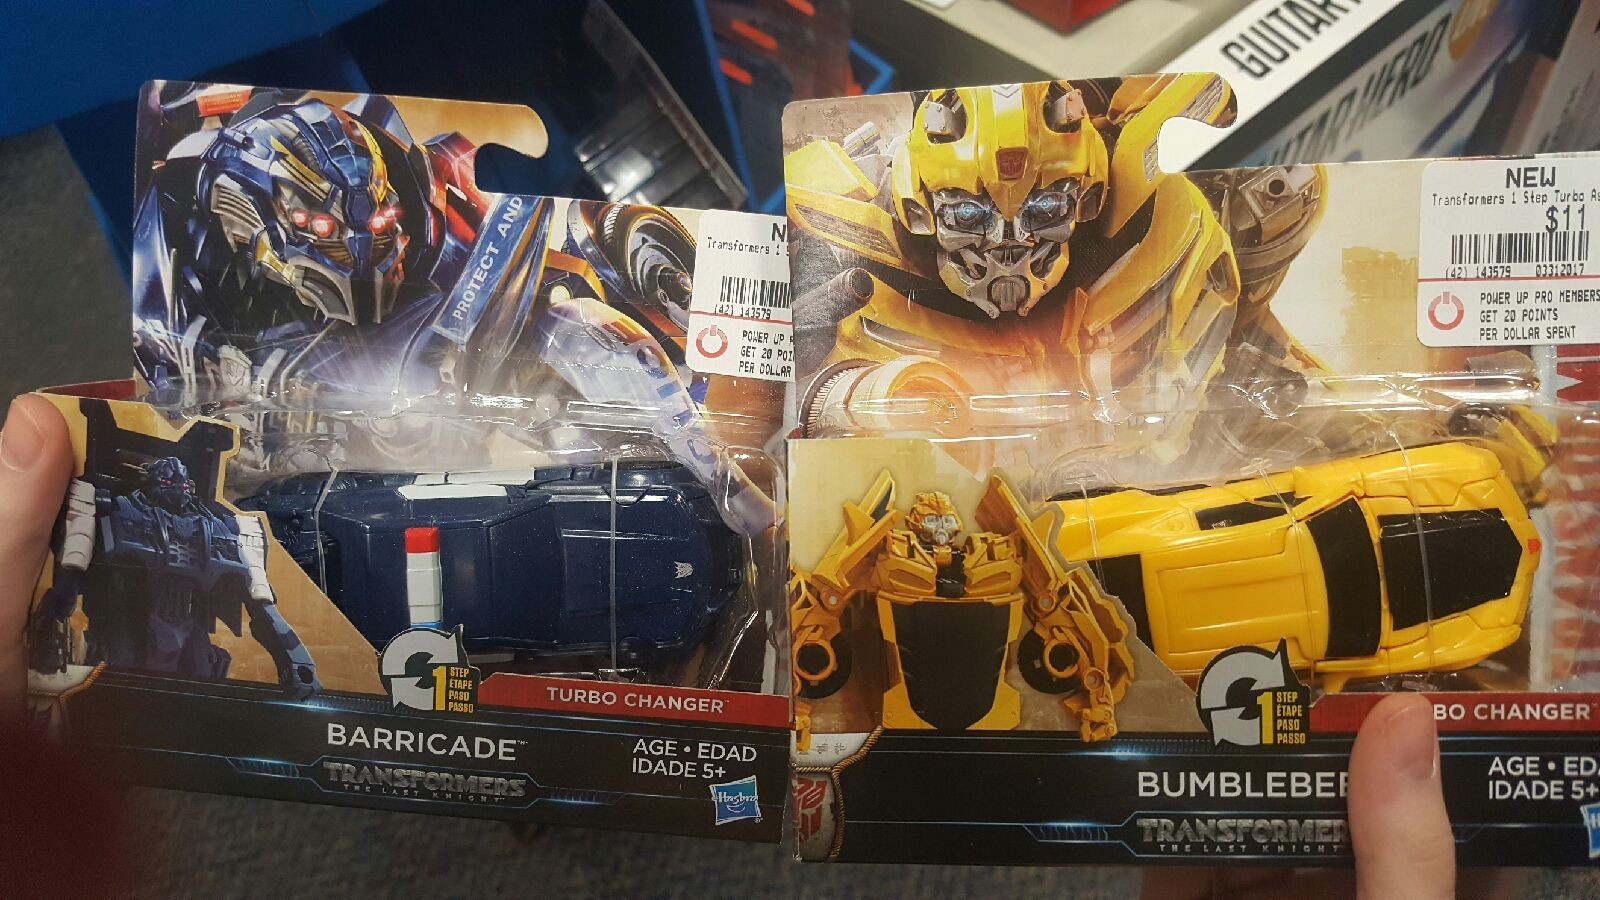 Gamestop Now Has the First Wave One Steps from Transformers